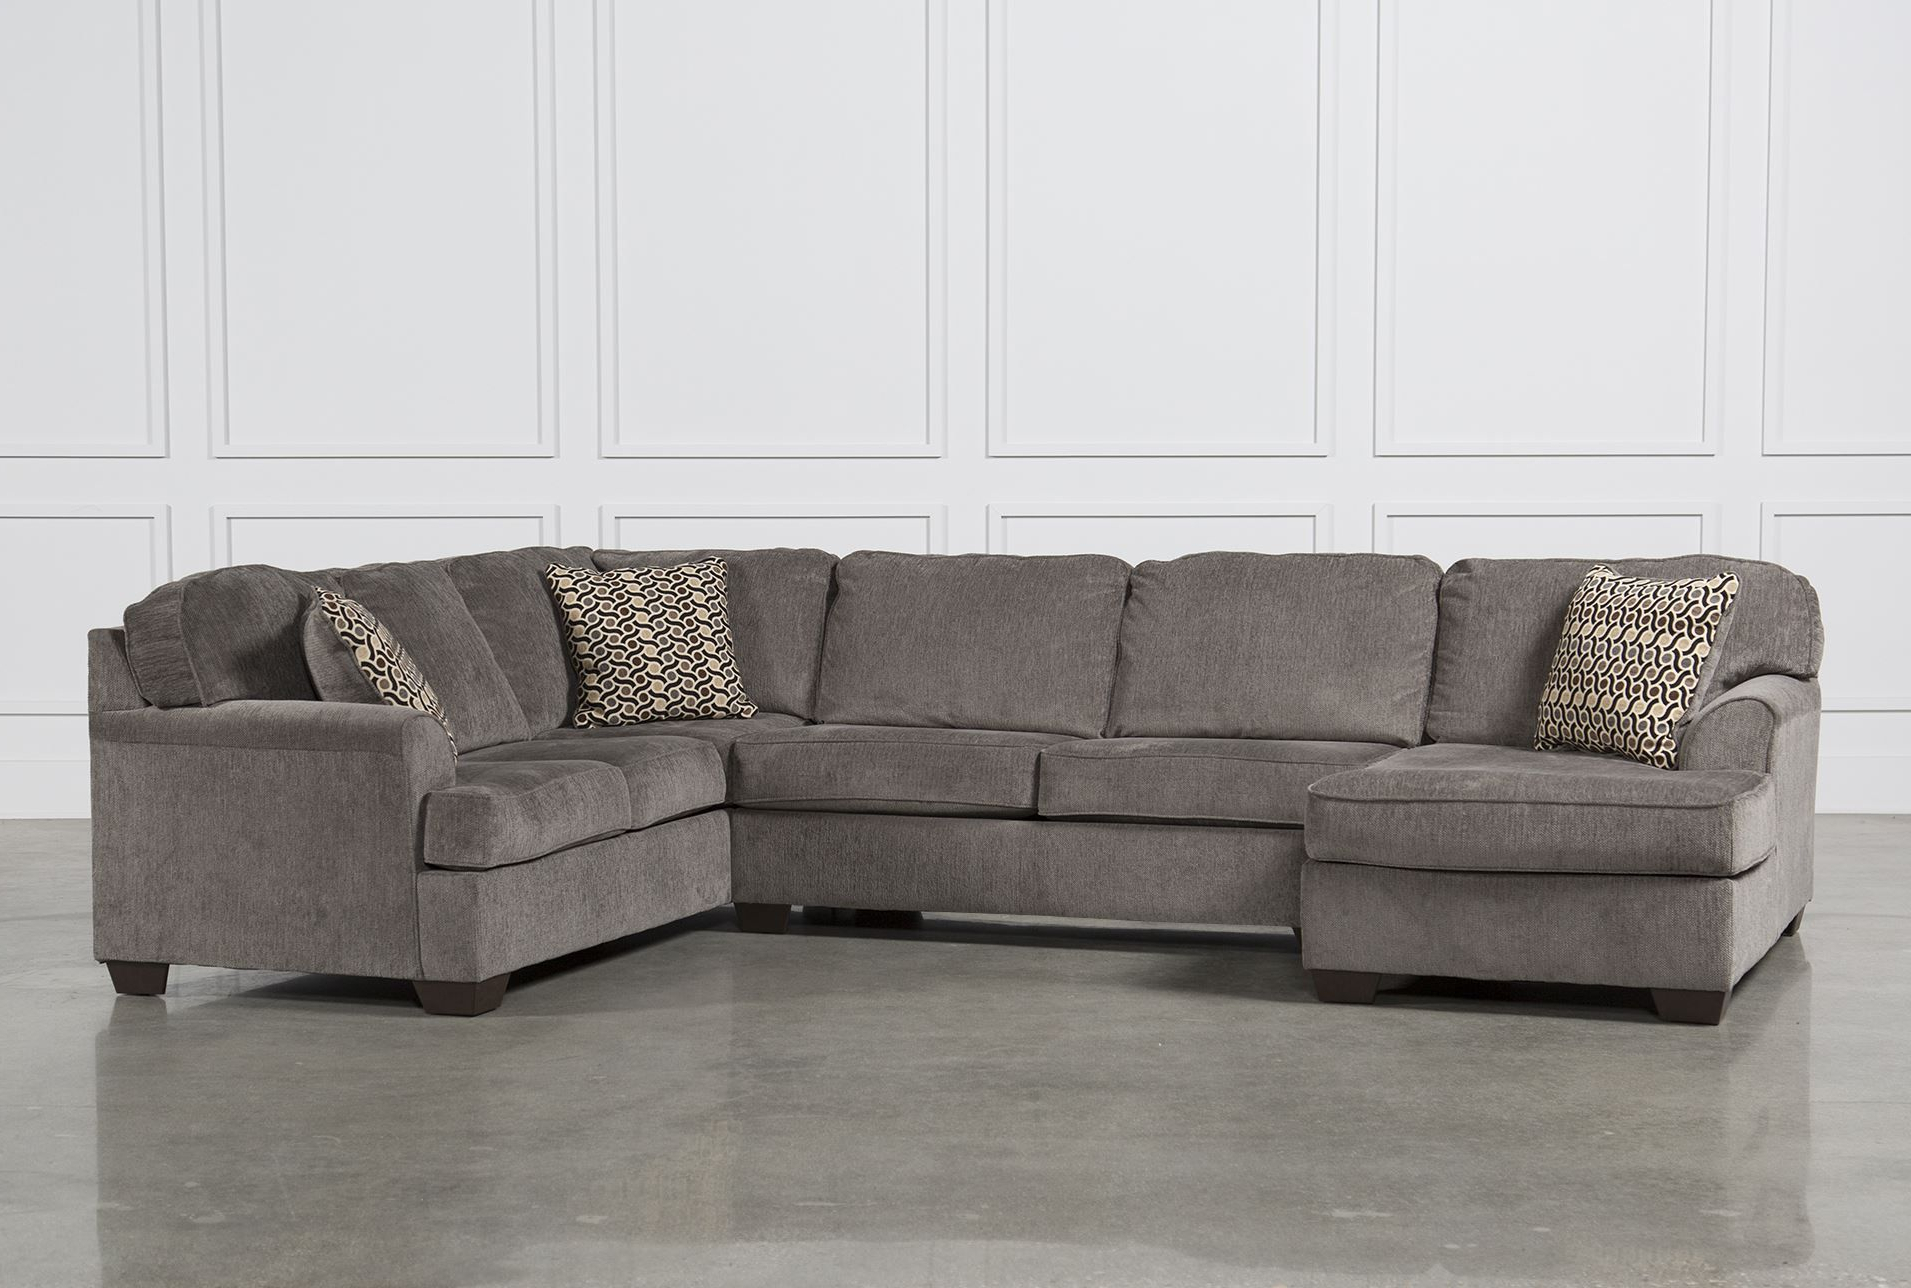 Delano Smoke 3 Piece Sectionals Inside Widely Used Loric Smoke 3 Piece Sectional W/laf Chaise – Signature $ (View 10 of 20)